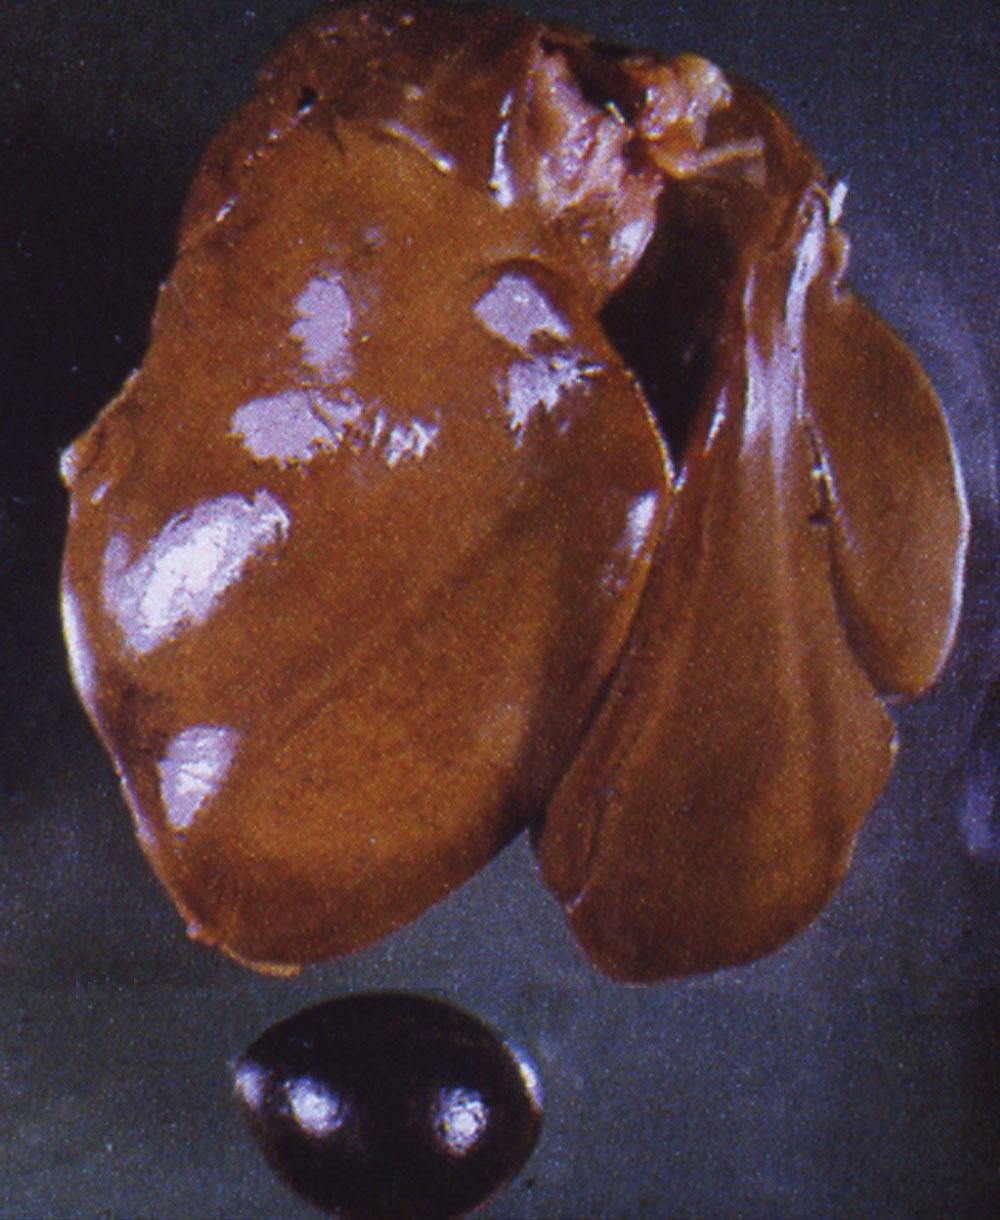 fowl-typhoid: Avian liver, spleen. Liver is pale with diffuse yellow-brown (bronze) discoloration; splenic congestion and enlargement.